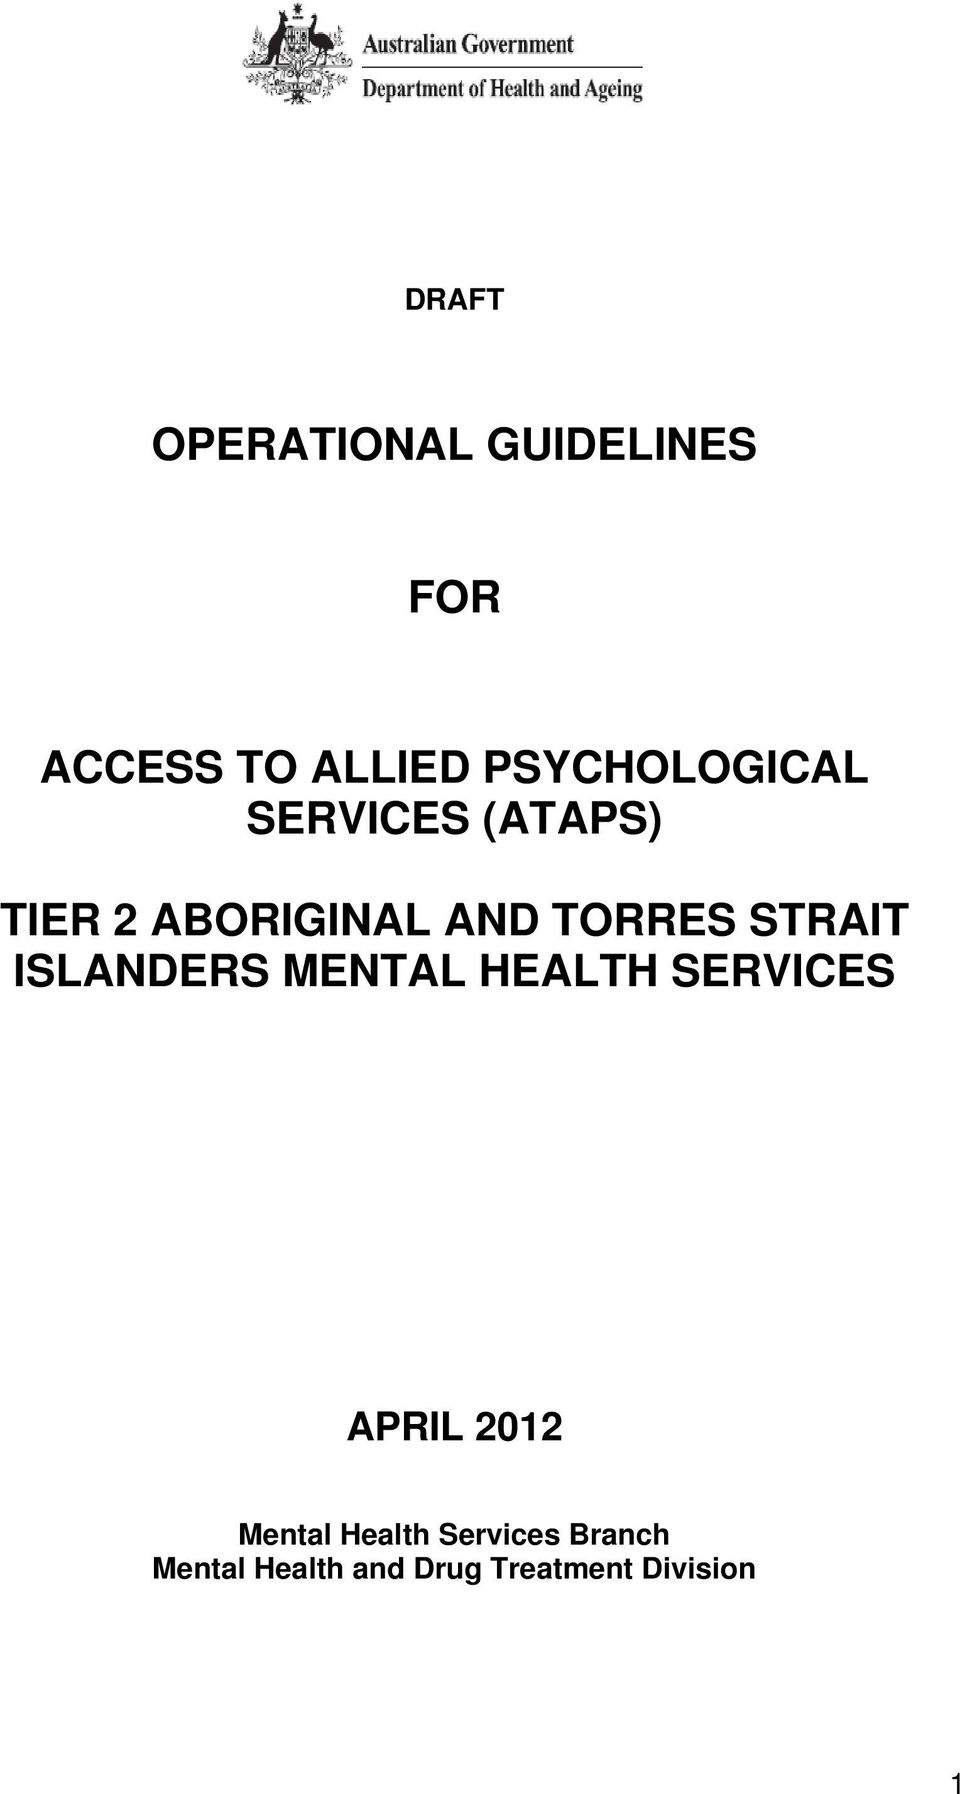 TORRES STRAIT ISLANDERS MENTAL HEALTH SERVICES APRIL 2012